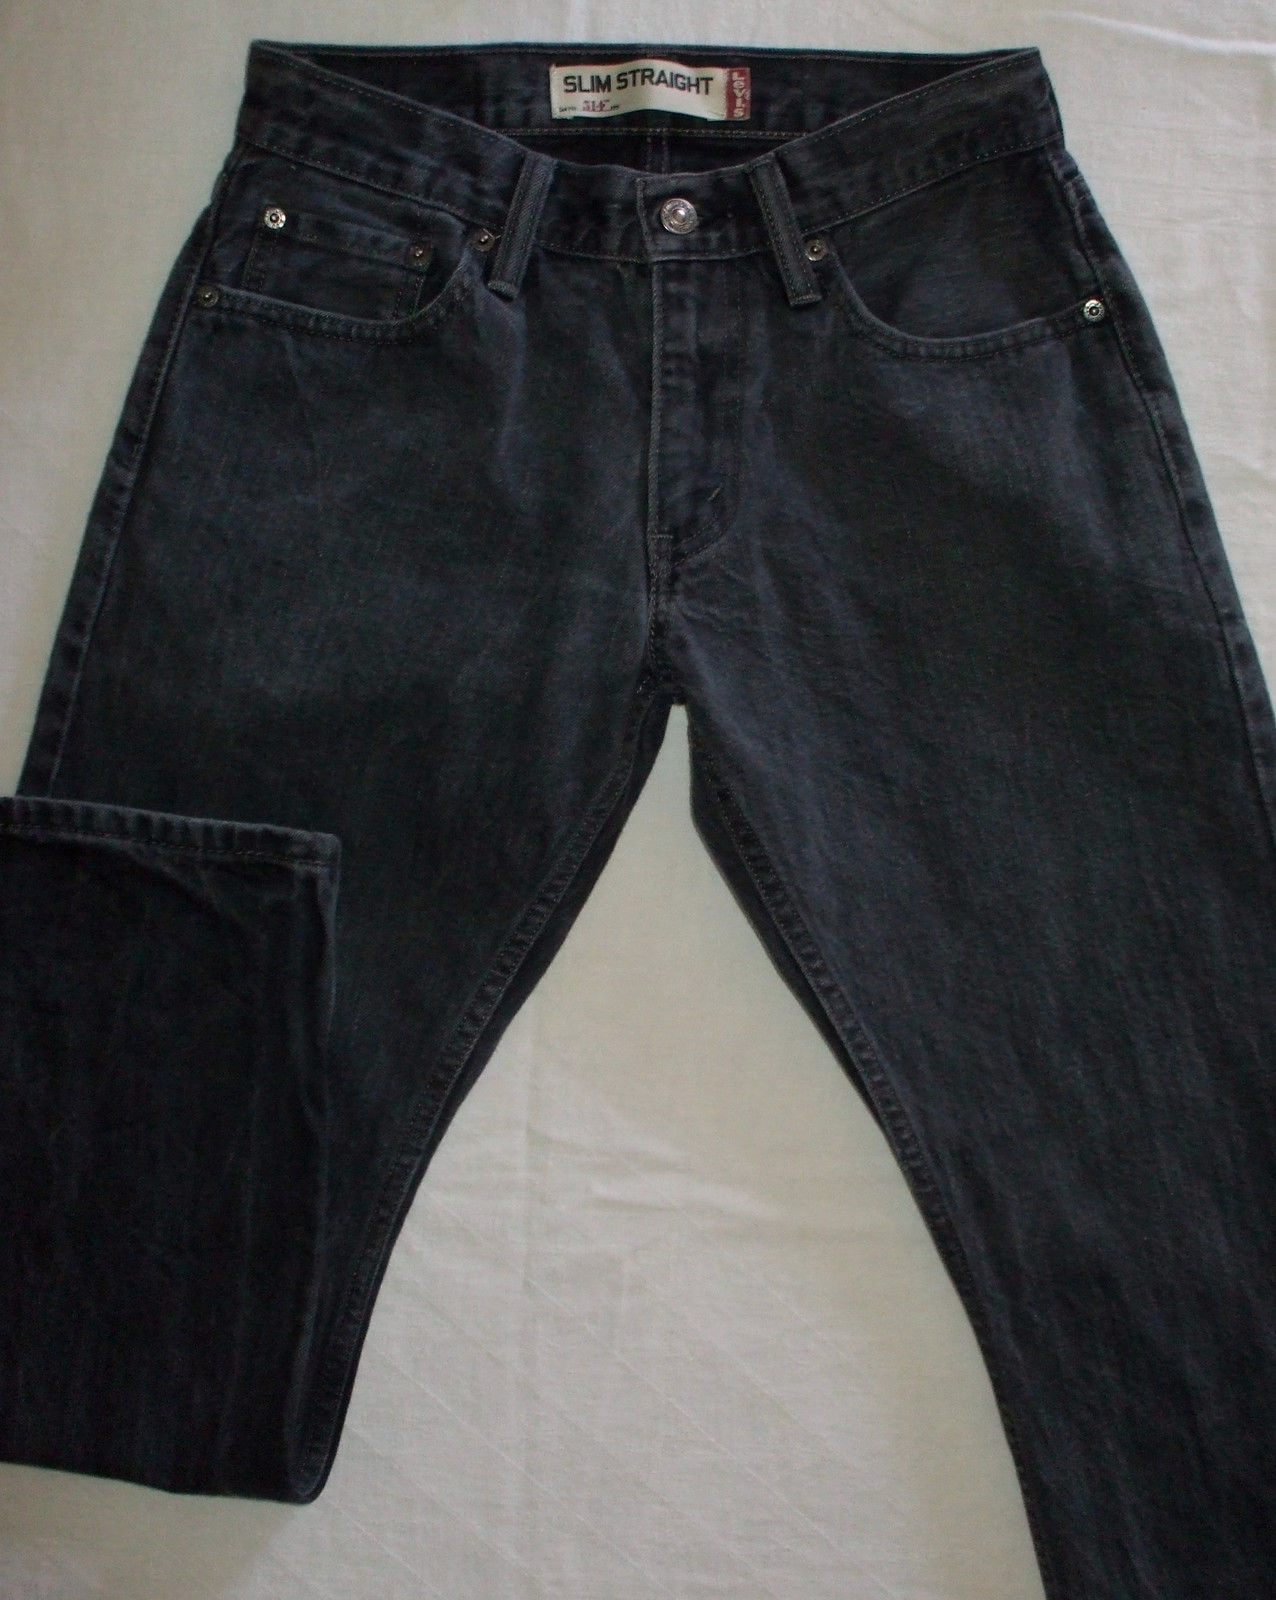 Levis 514 Black Washed Denim Jeans Red Tab Zip Silver Rivets Slim Straight 28x28